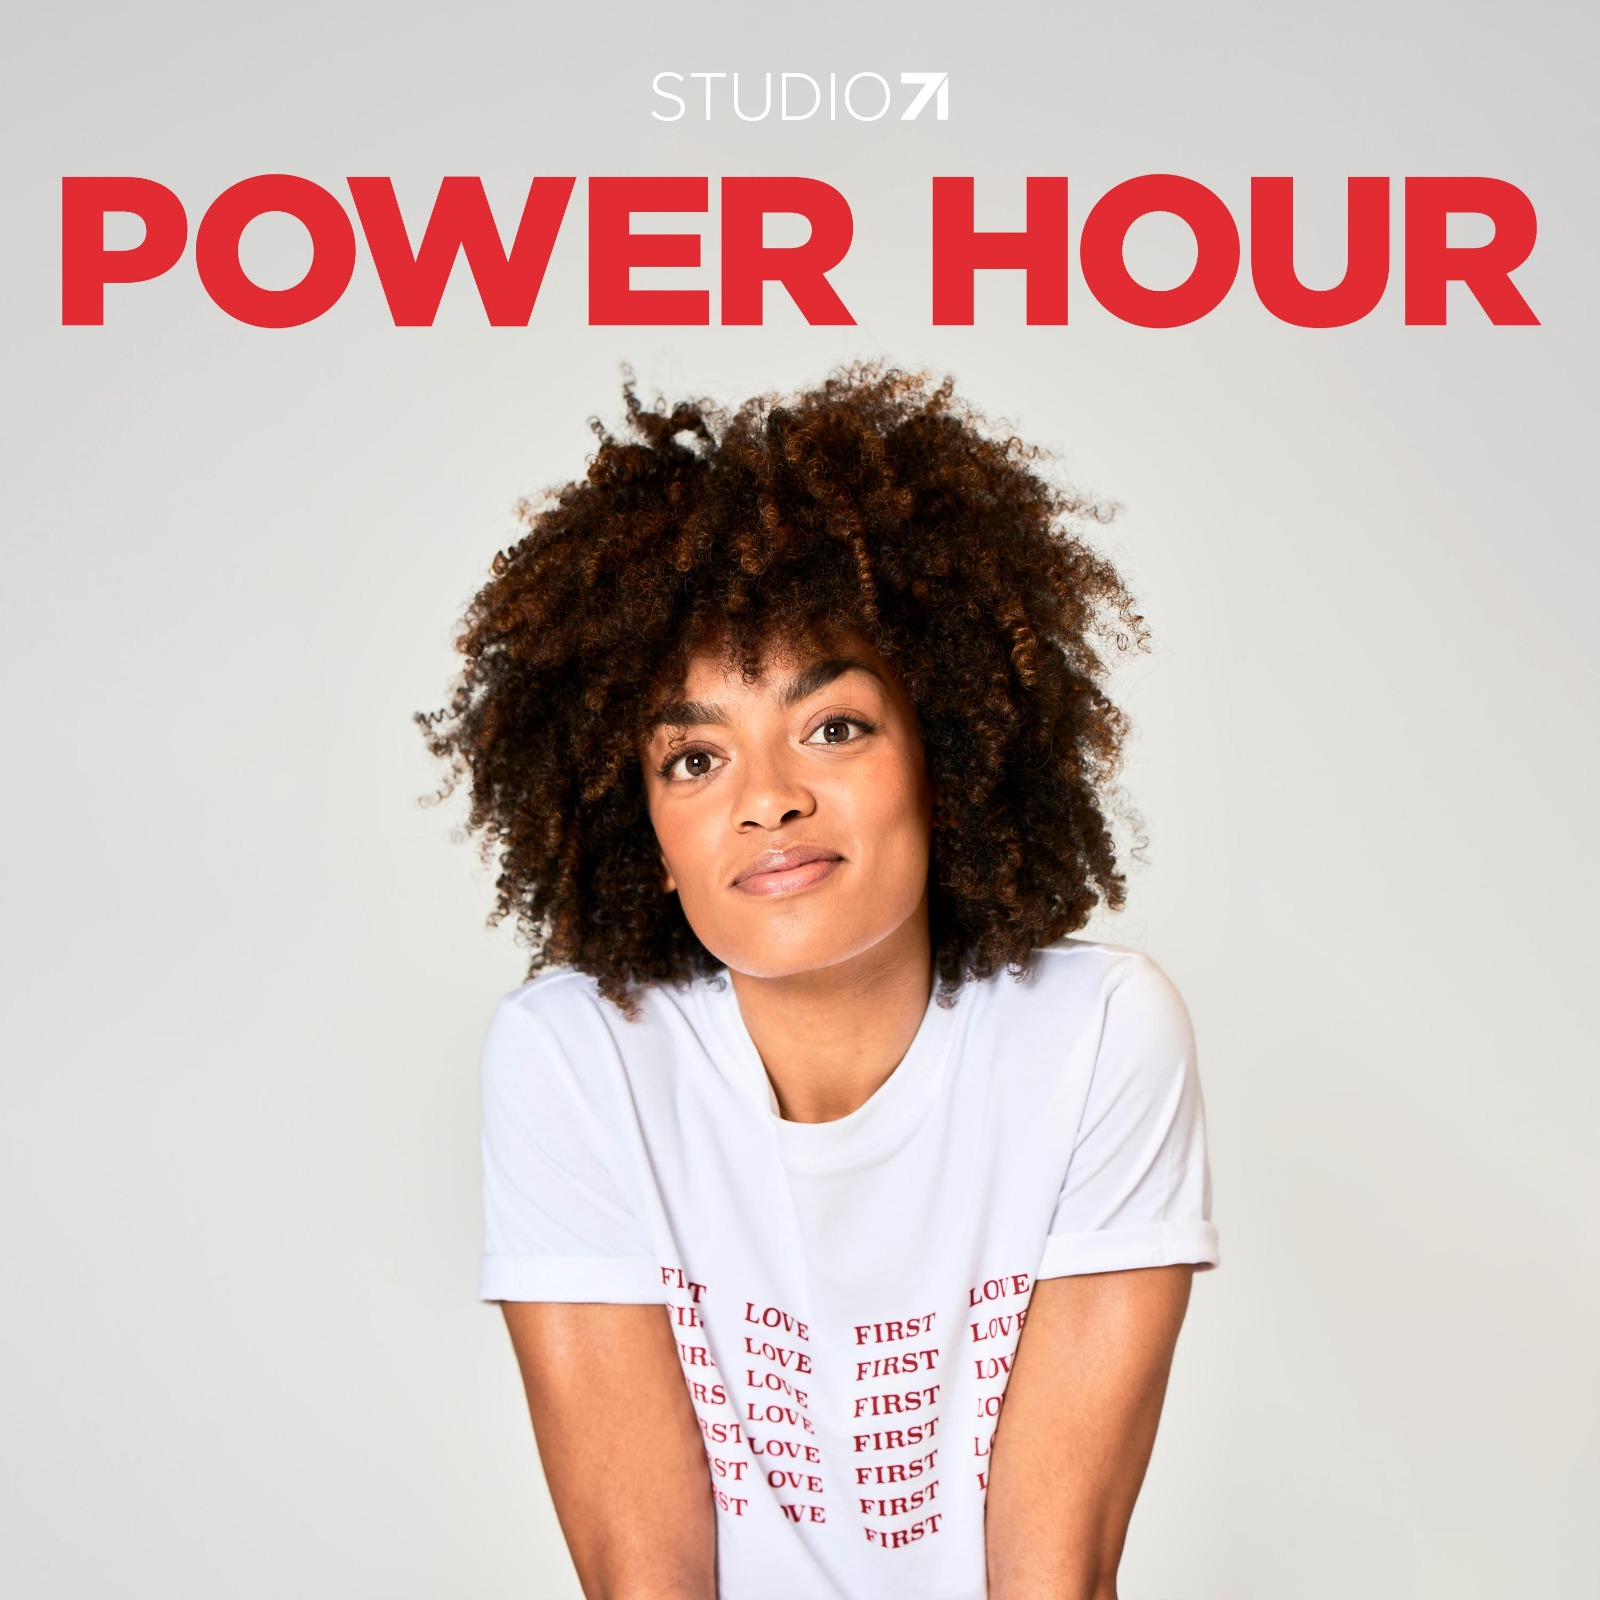 studio71-power-hour-artwork